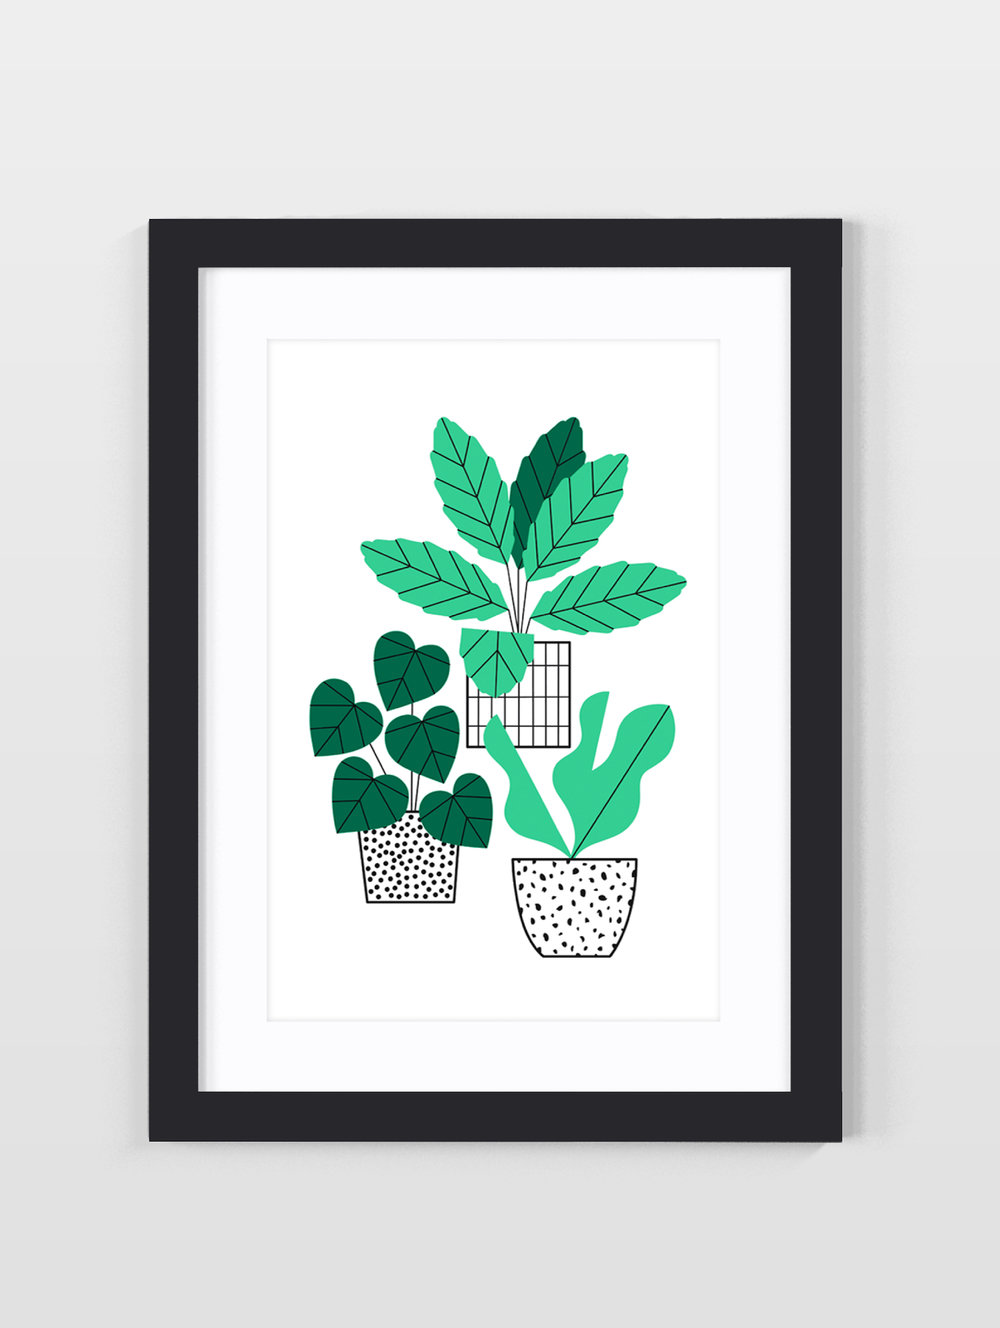 House Plants by Sarah Abbott